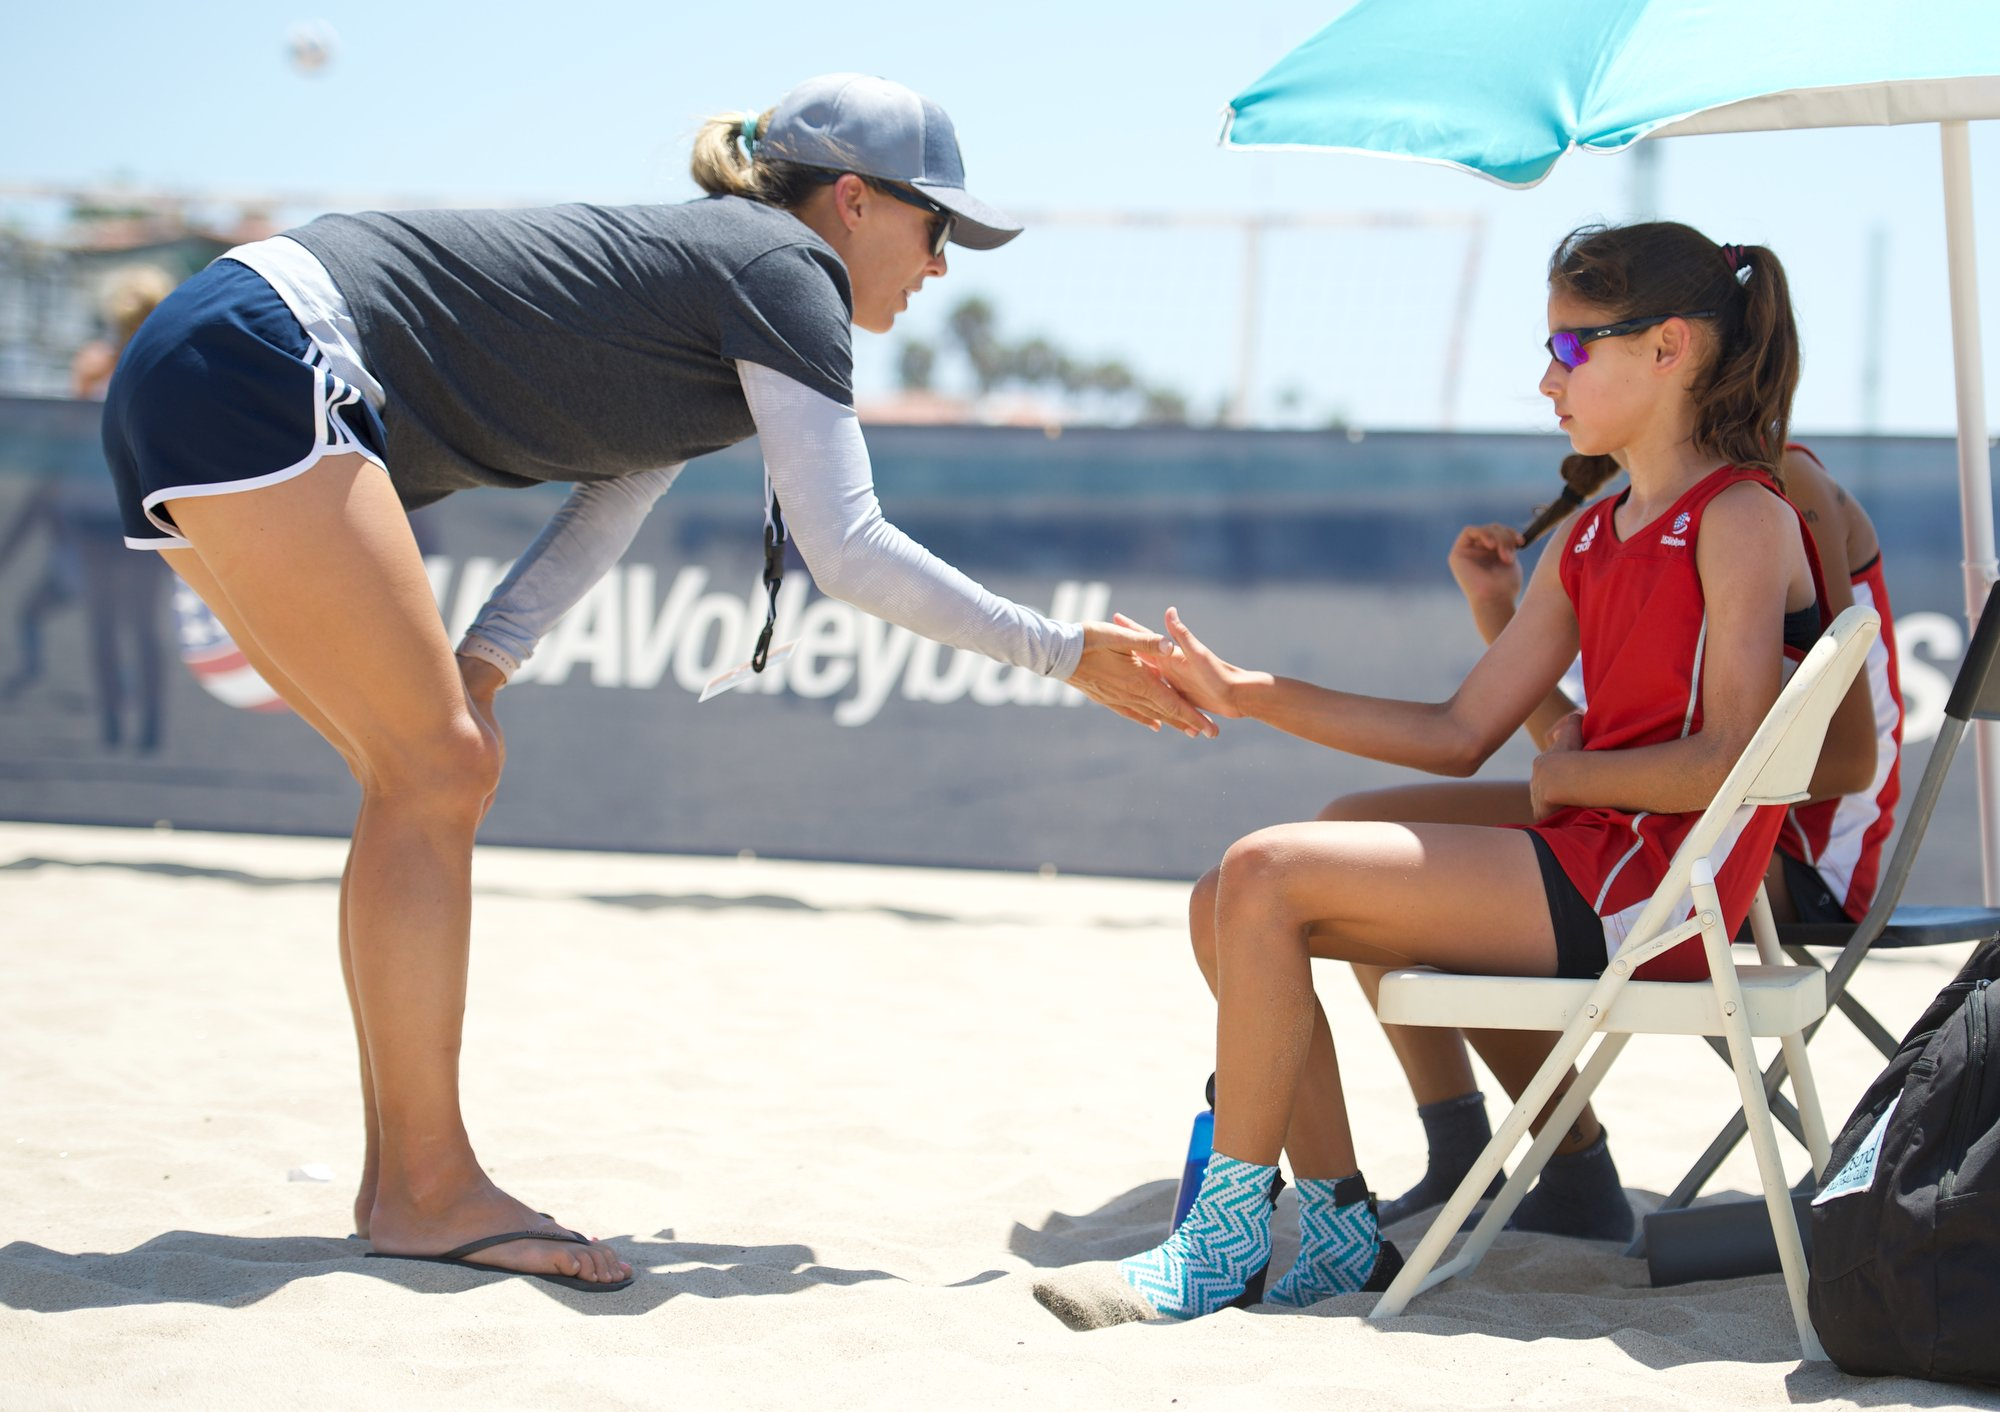 Coach with Beach Athlete